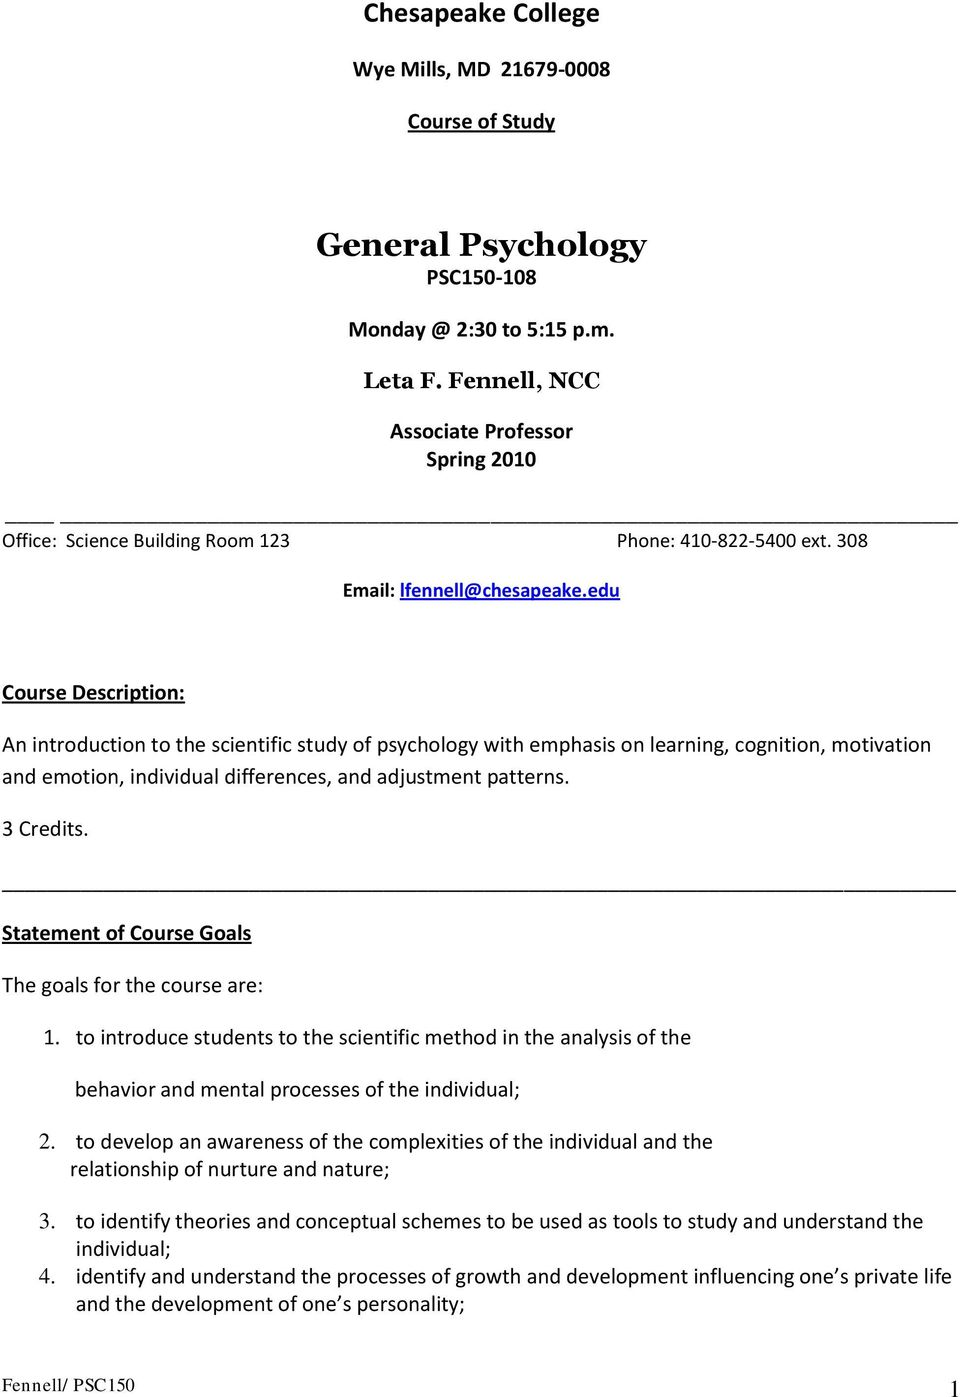 edu Course Description: An introduction to the scientific study of psychology with emphasis on learning, cognition, motivation and emotion, individual differences, and adjustment patterns. 3 Credits.